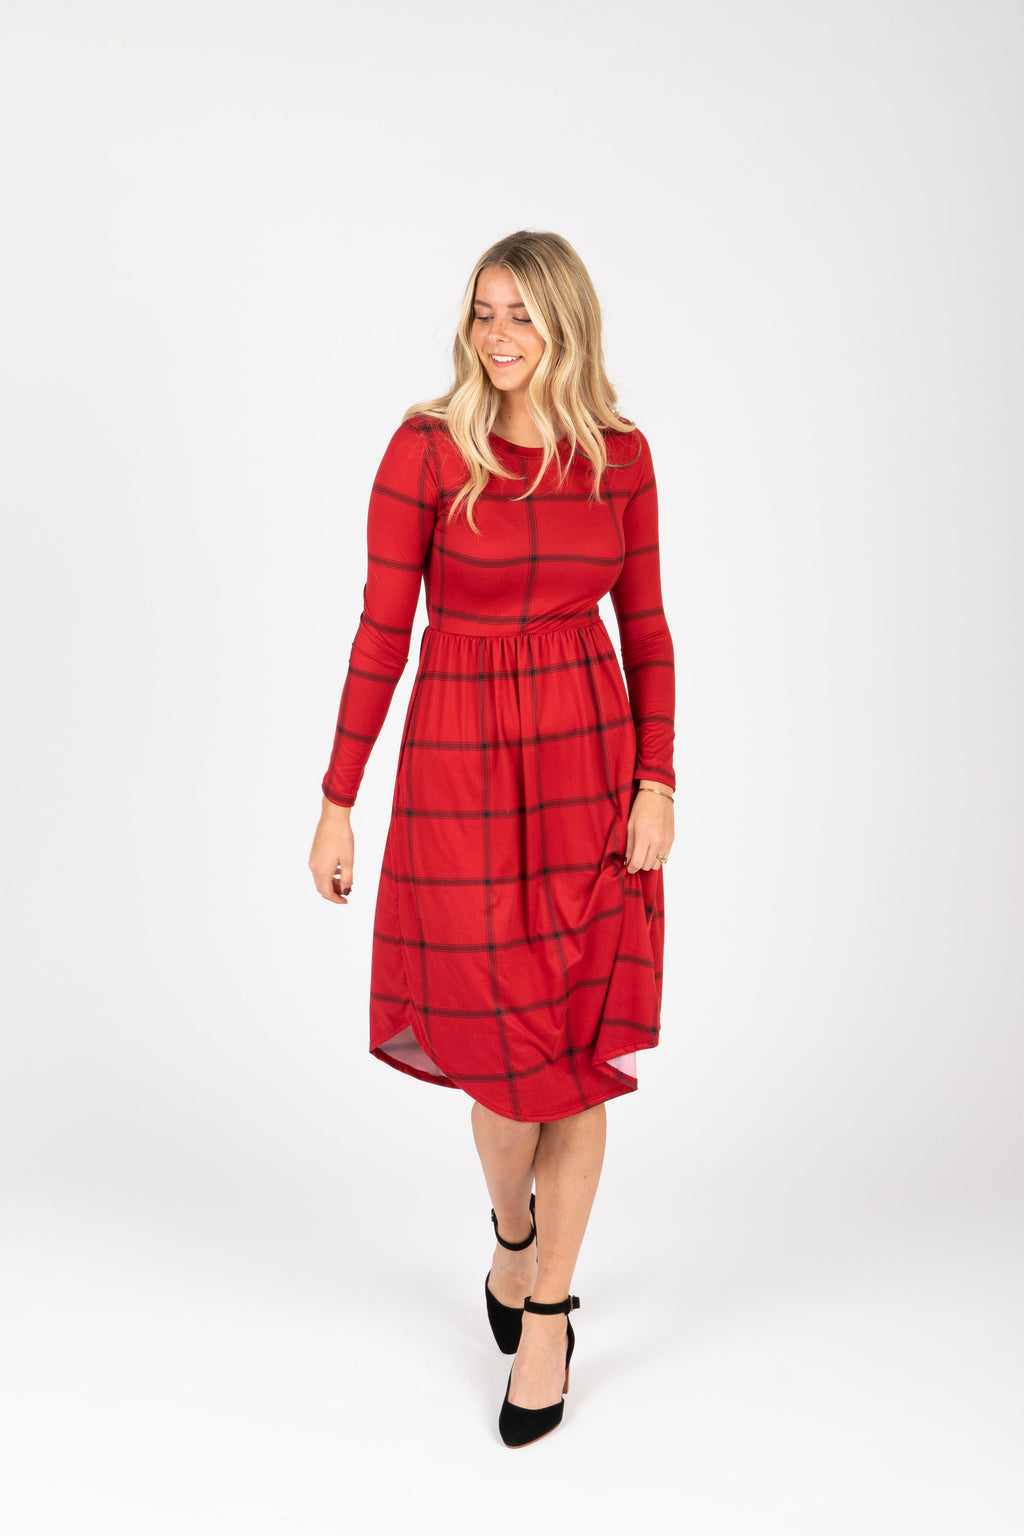 The Fiona Check Empire Dress in Burgundy, studio shoot; front view